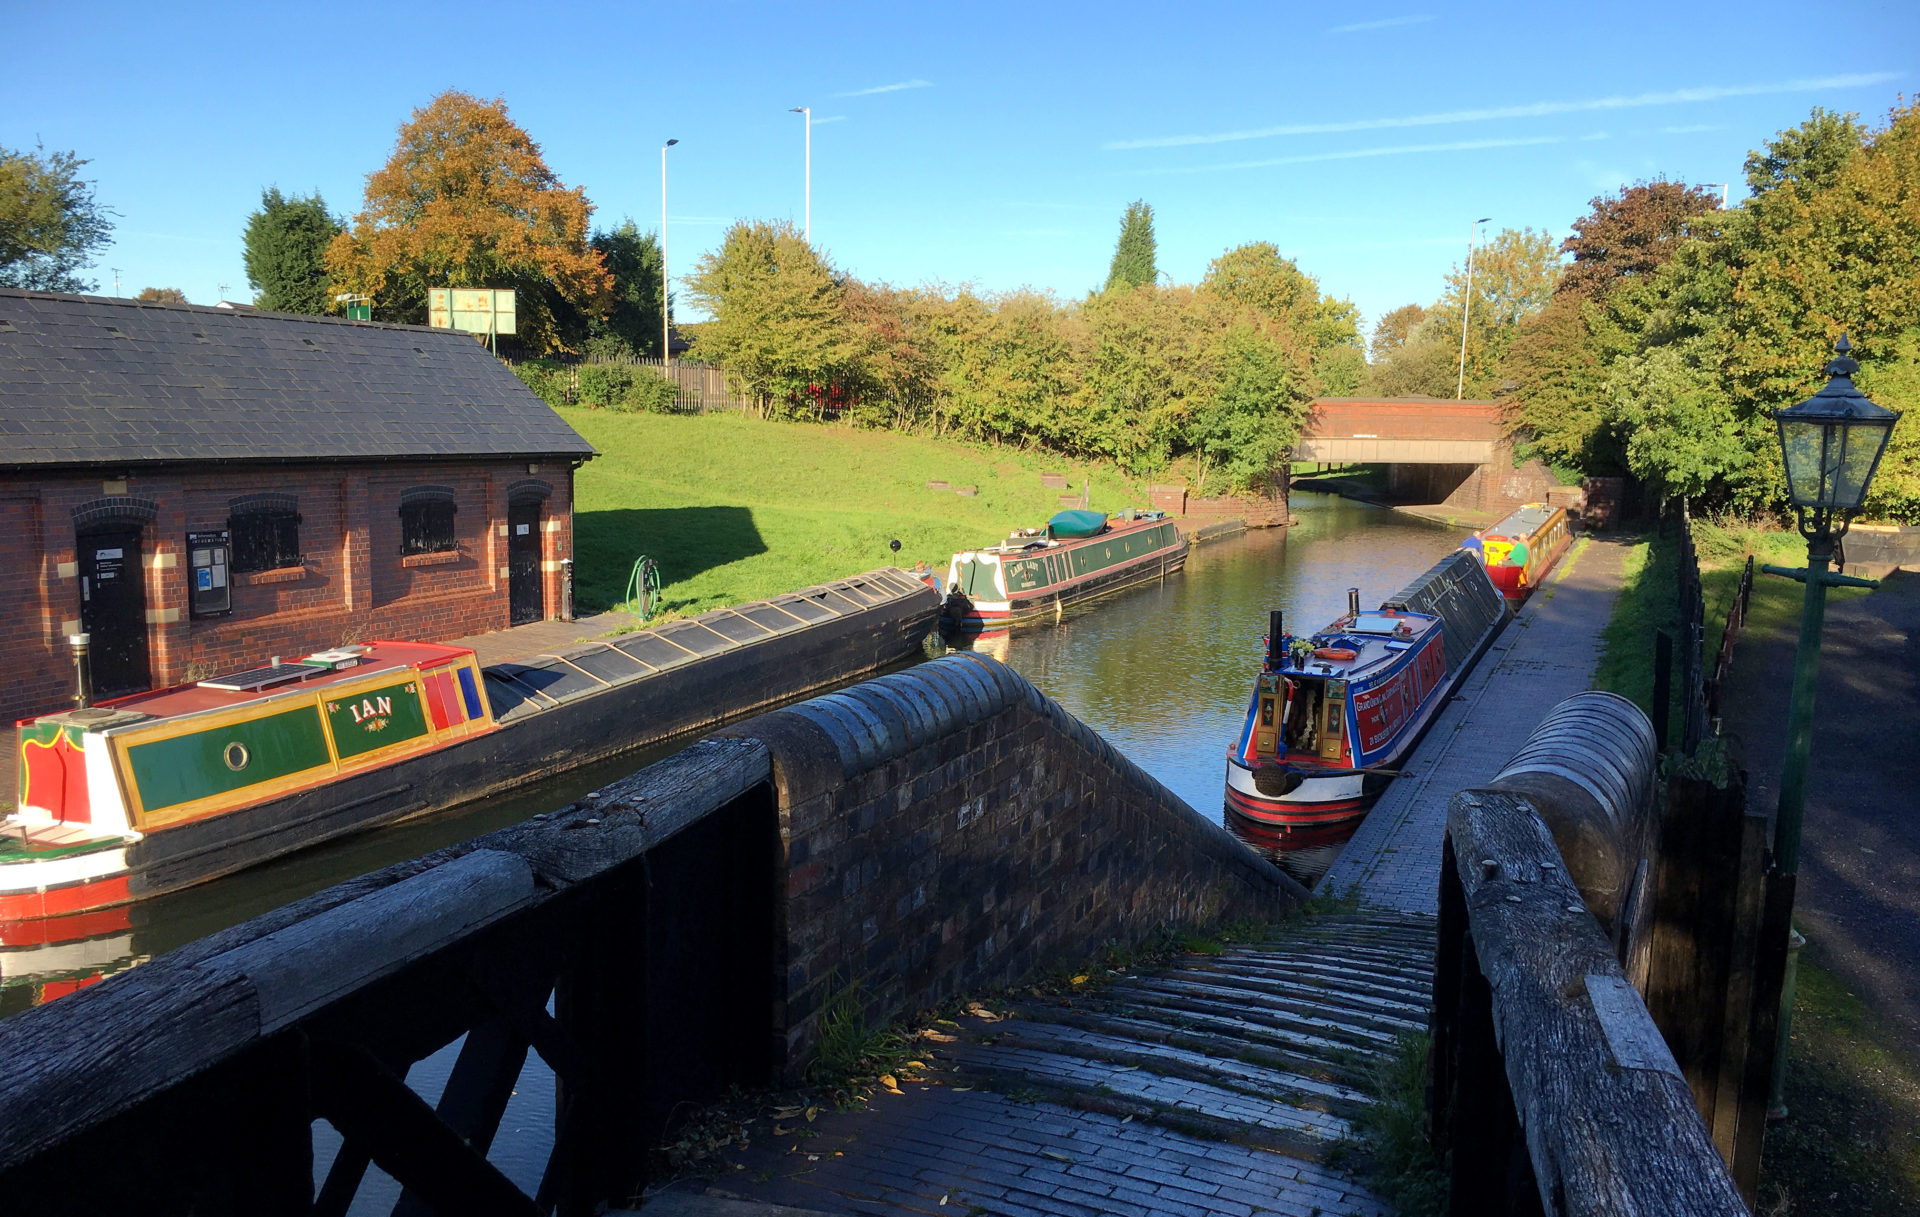 The wharf at the Black Country in Dudley.